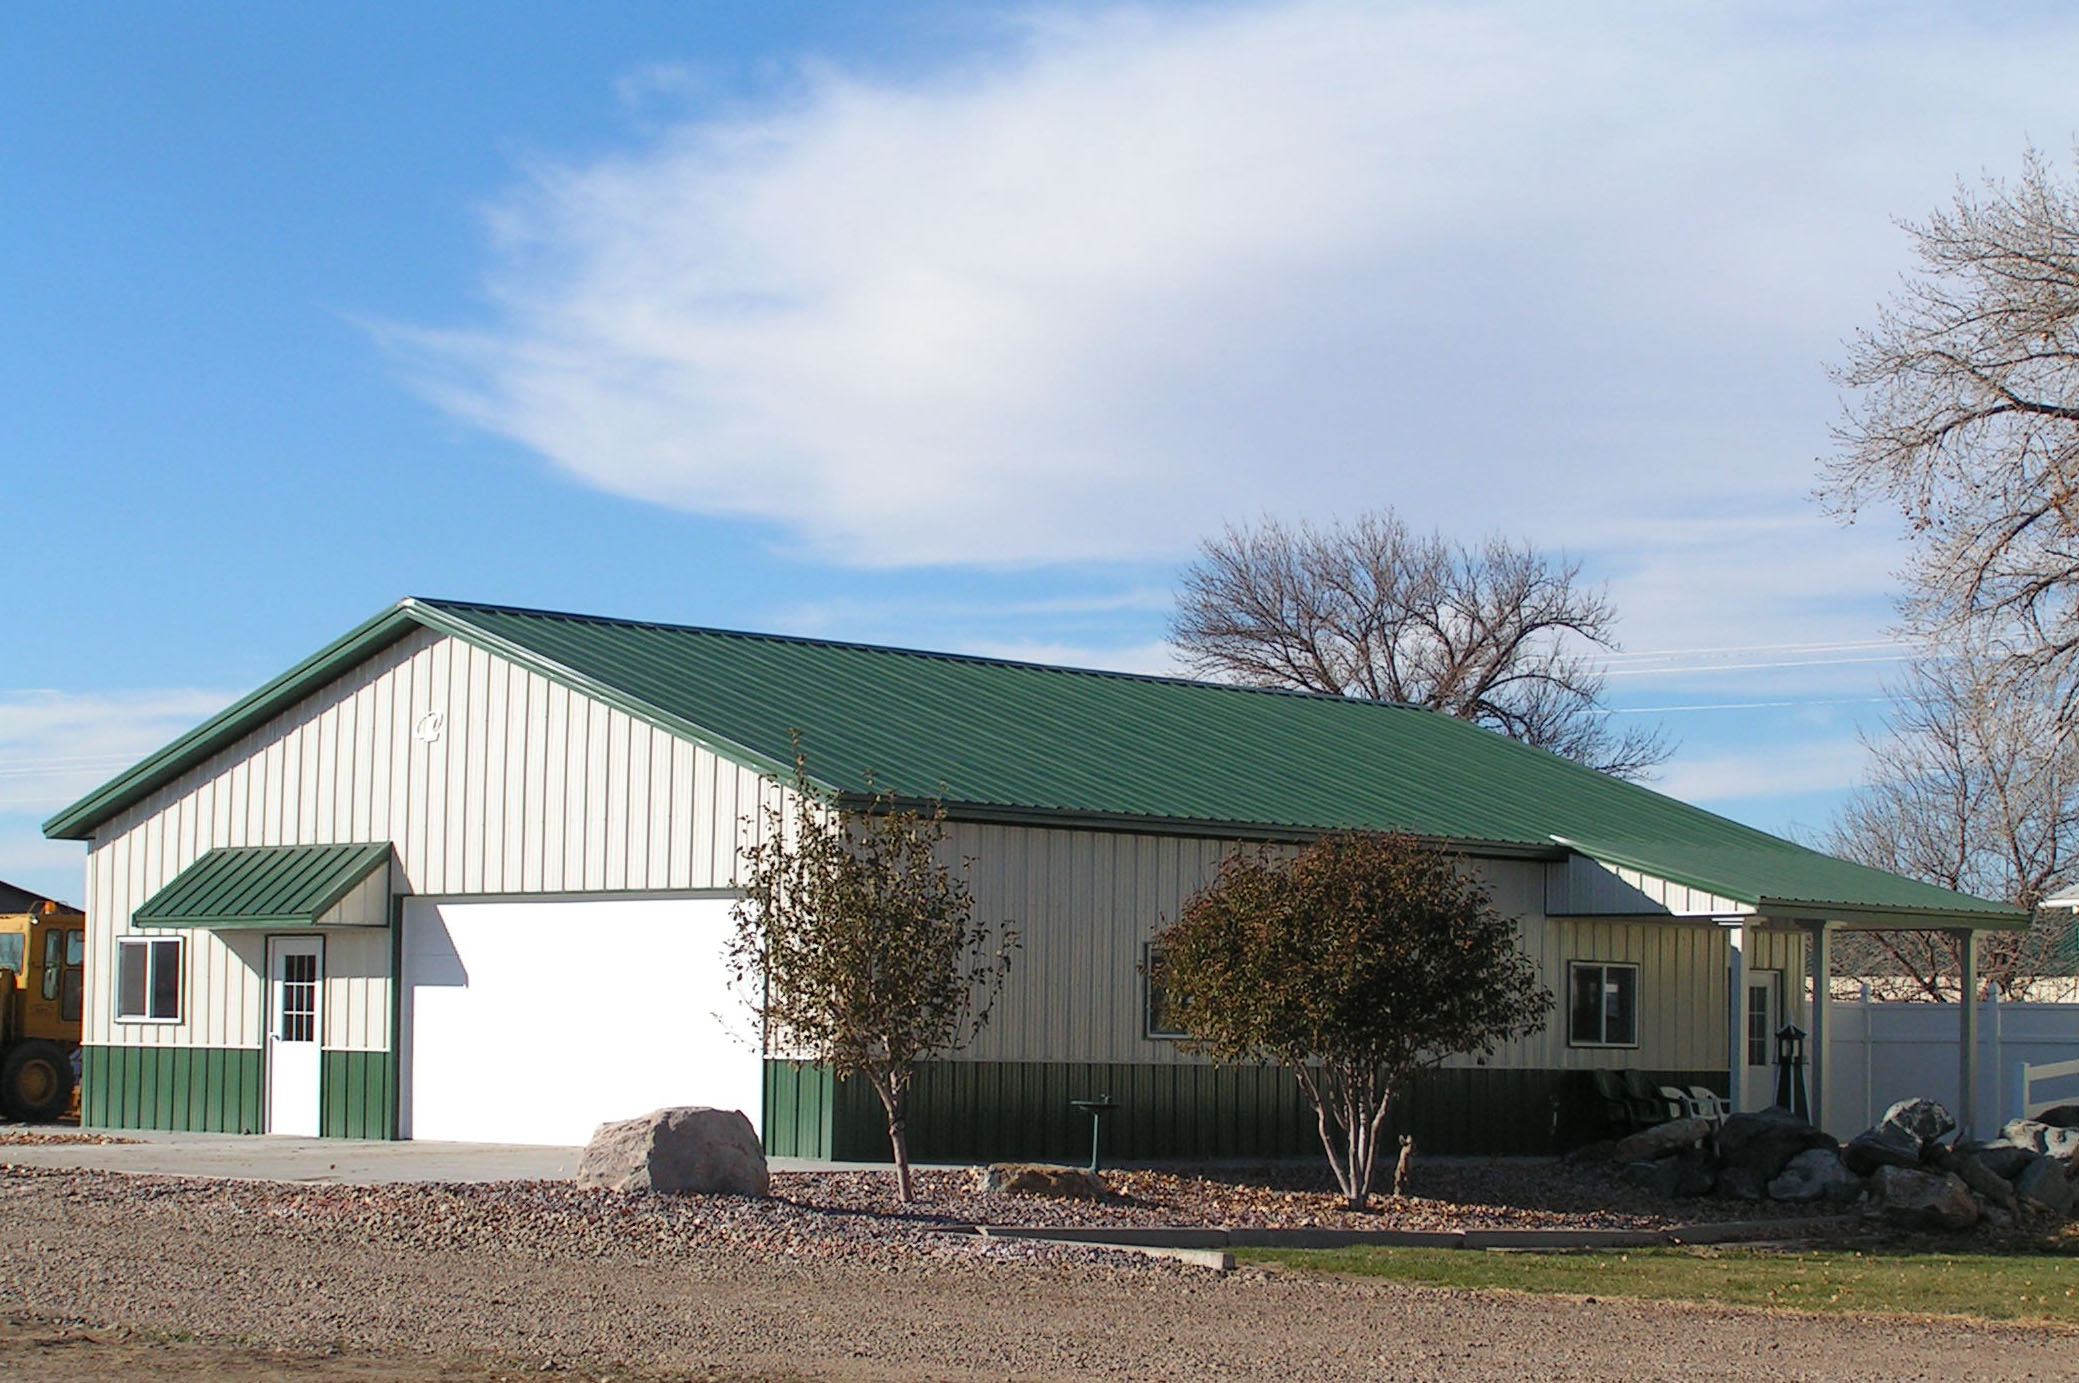 Steel Buildings, Metal Building Kits, Steel Pole Barns, Storage